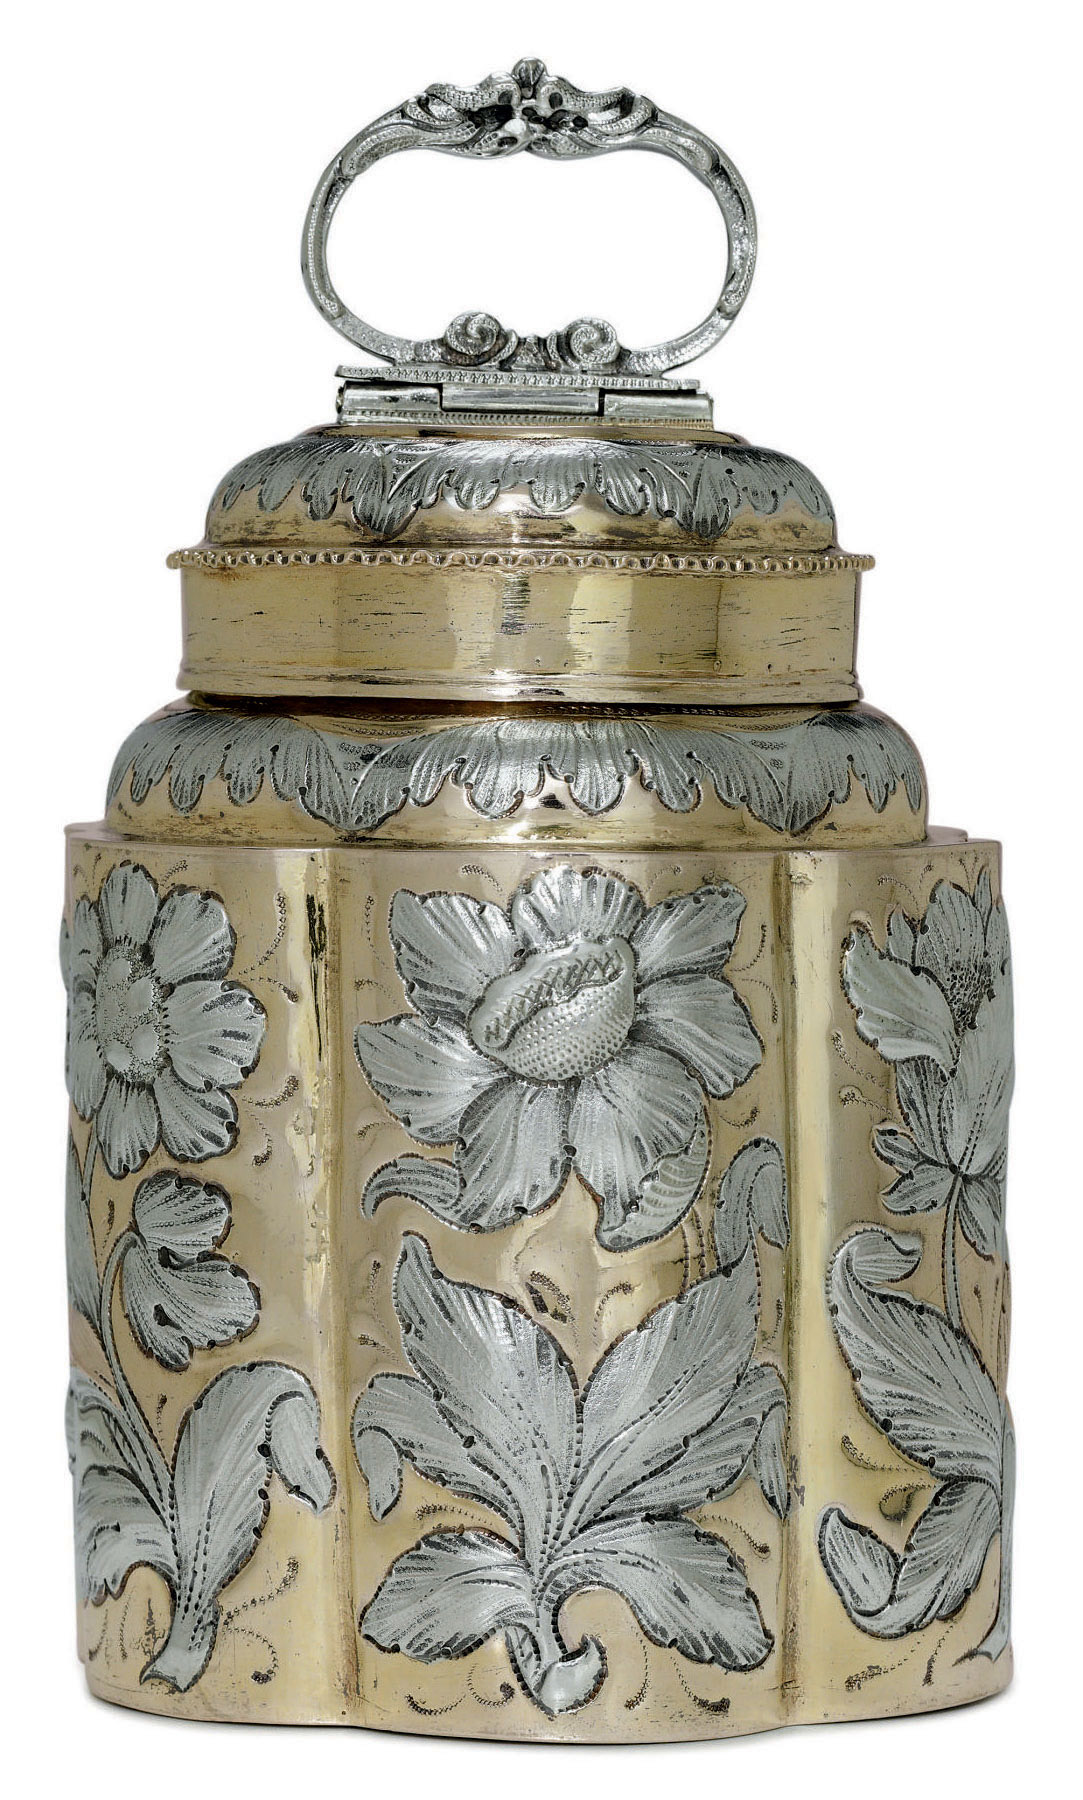 A FINE GERMAN SILVER-GILT CANNISTER